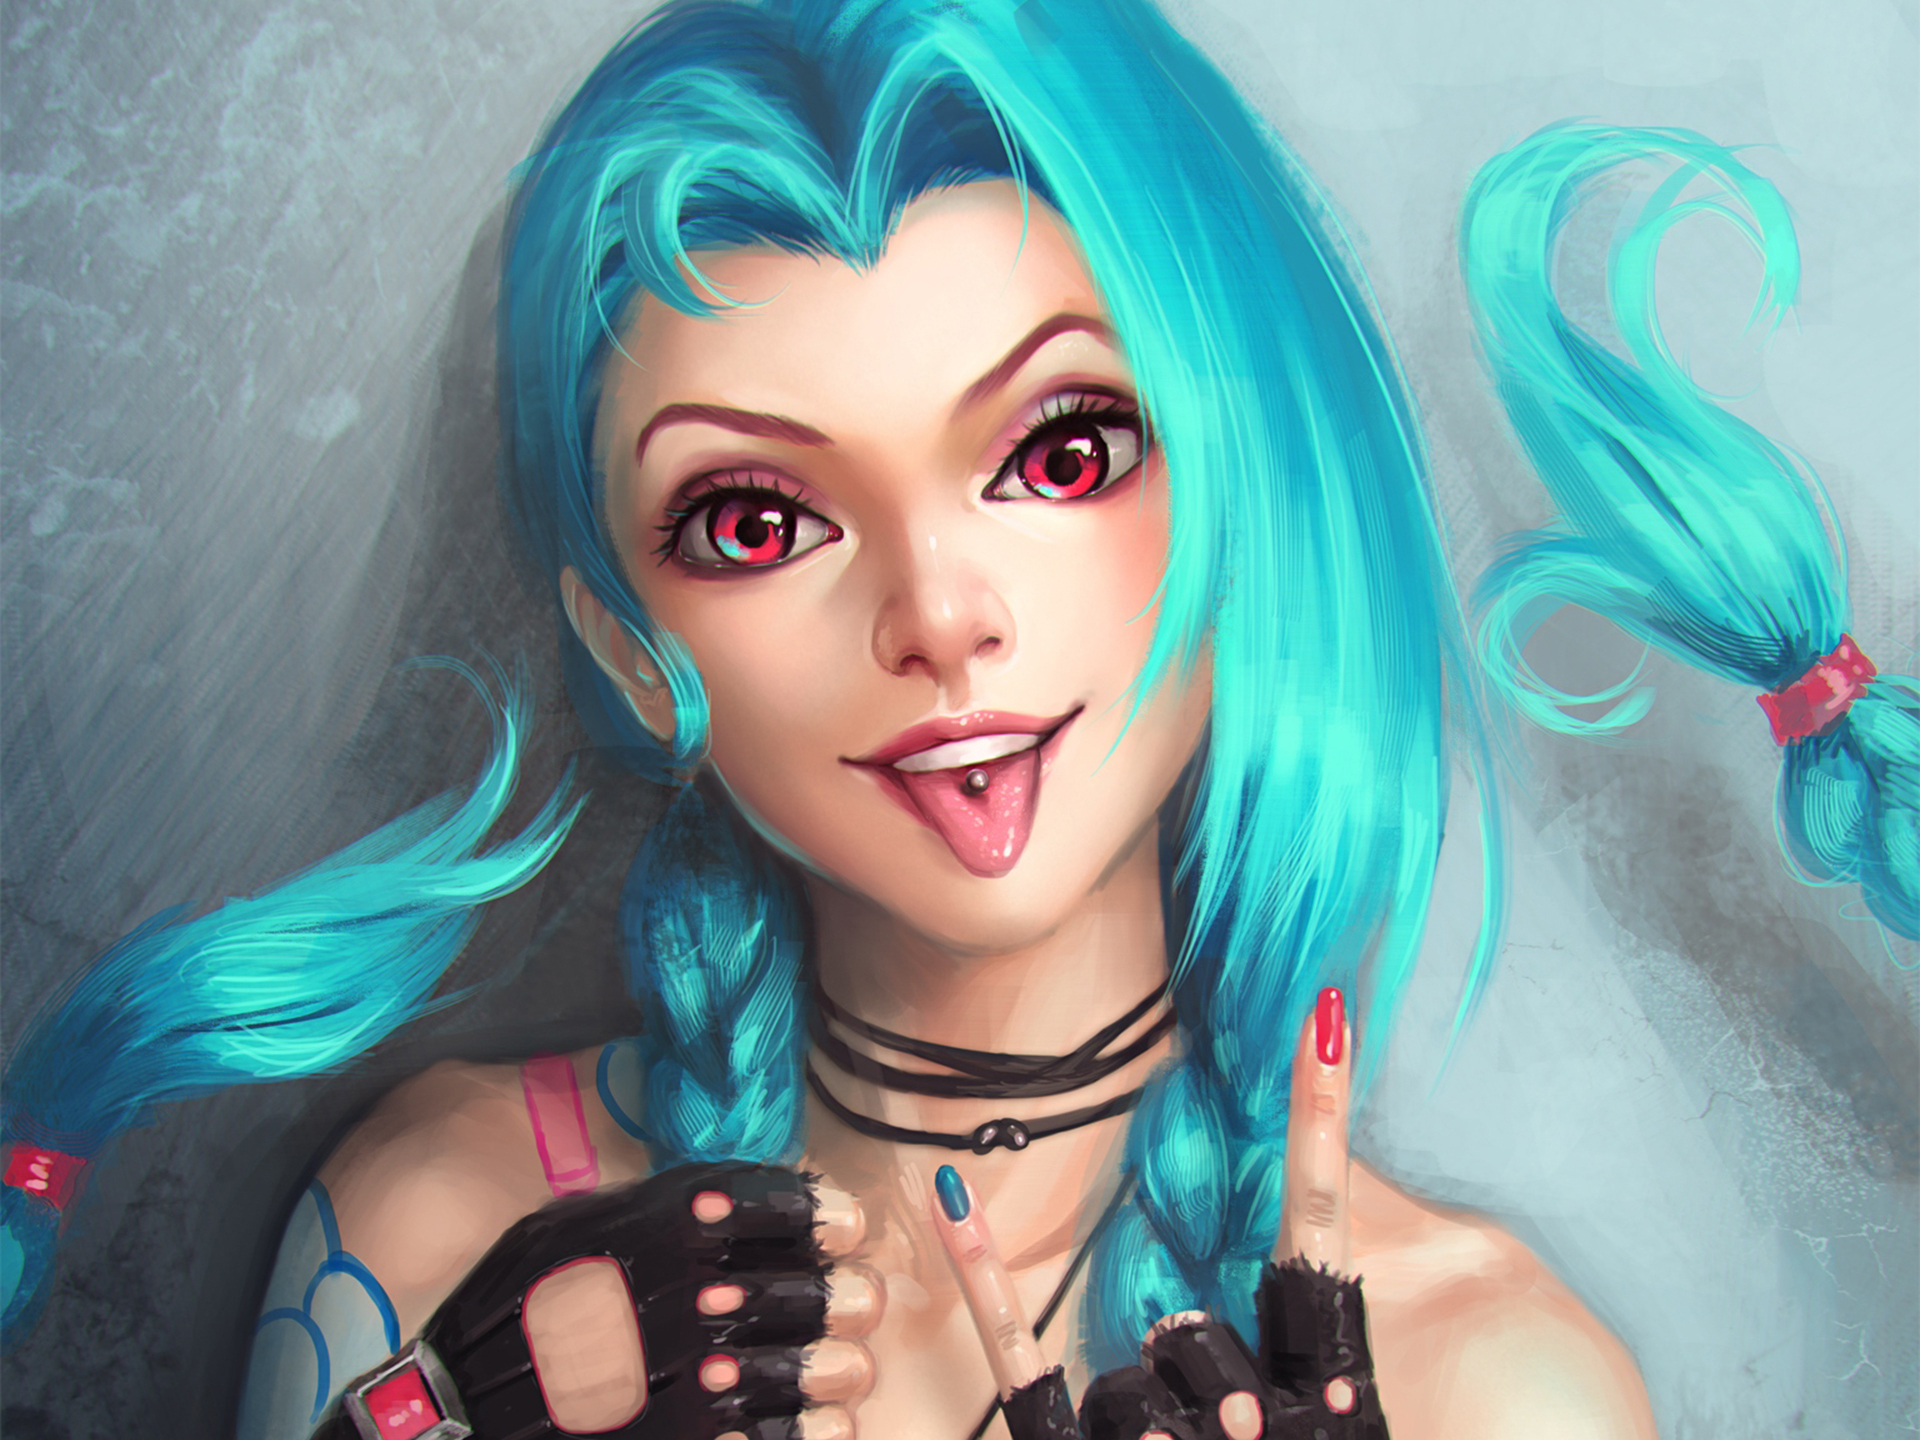 Fondos de pantalla Jinx de League of Legends